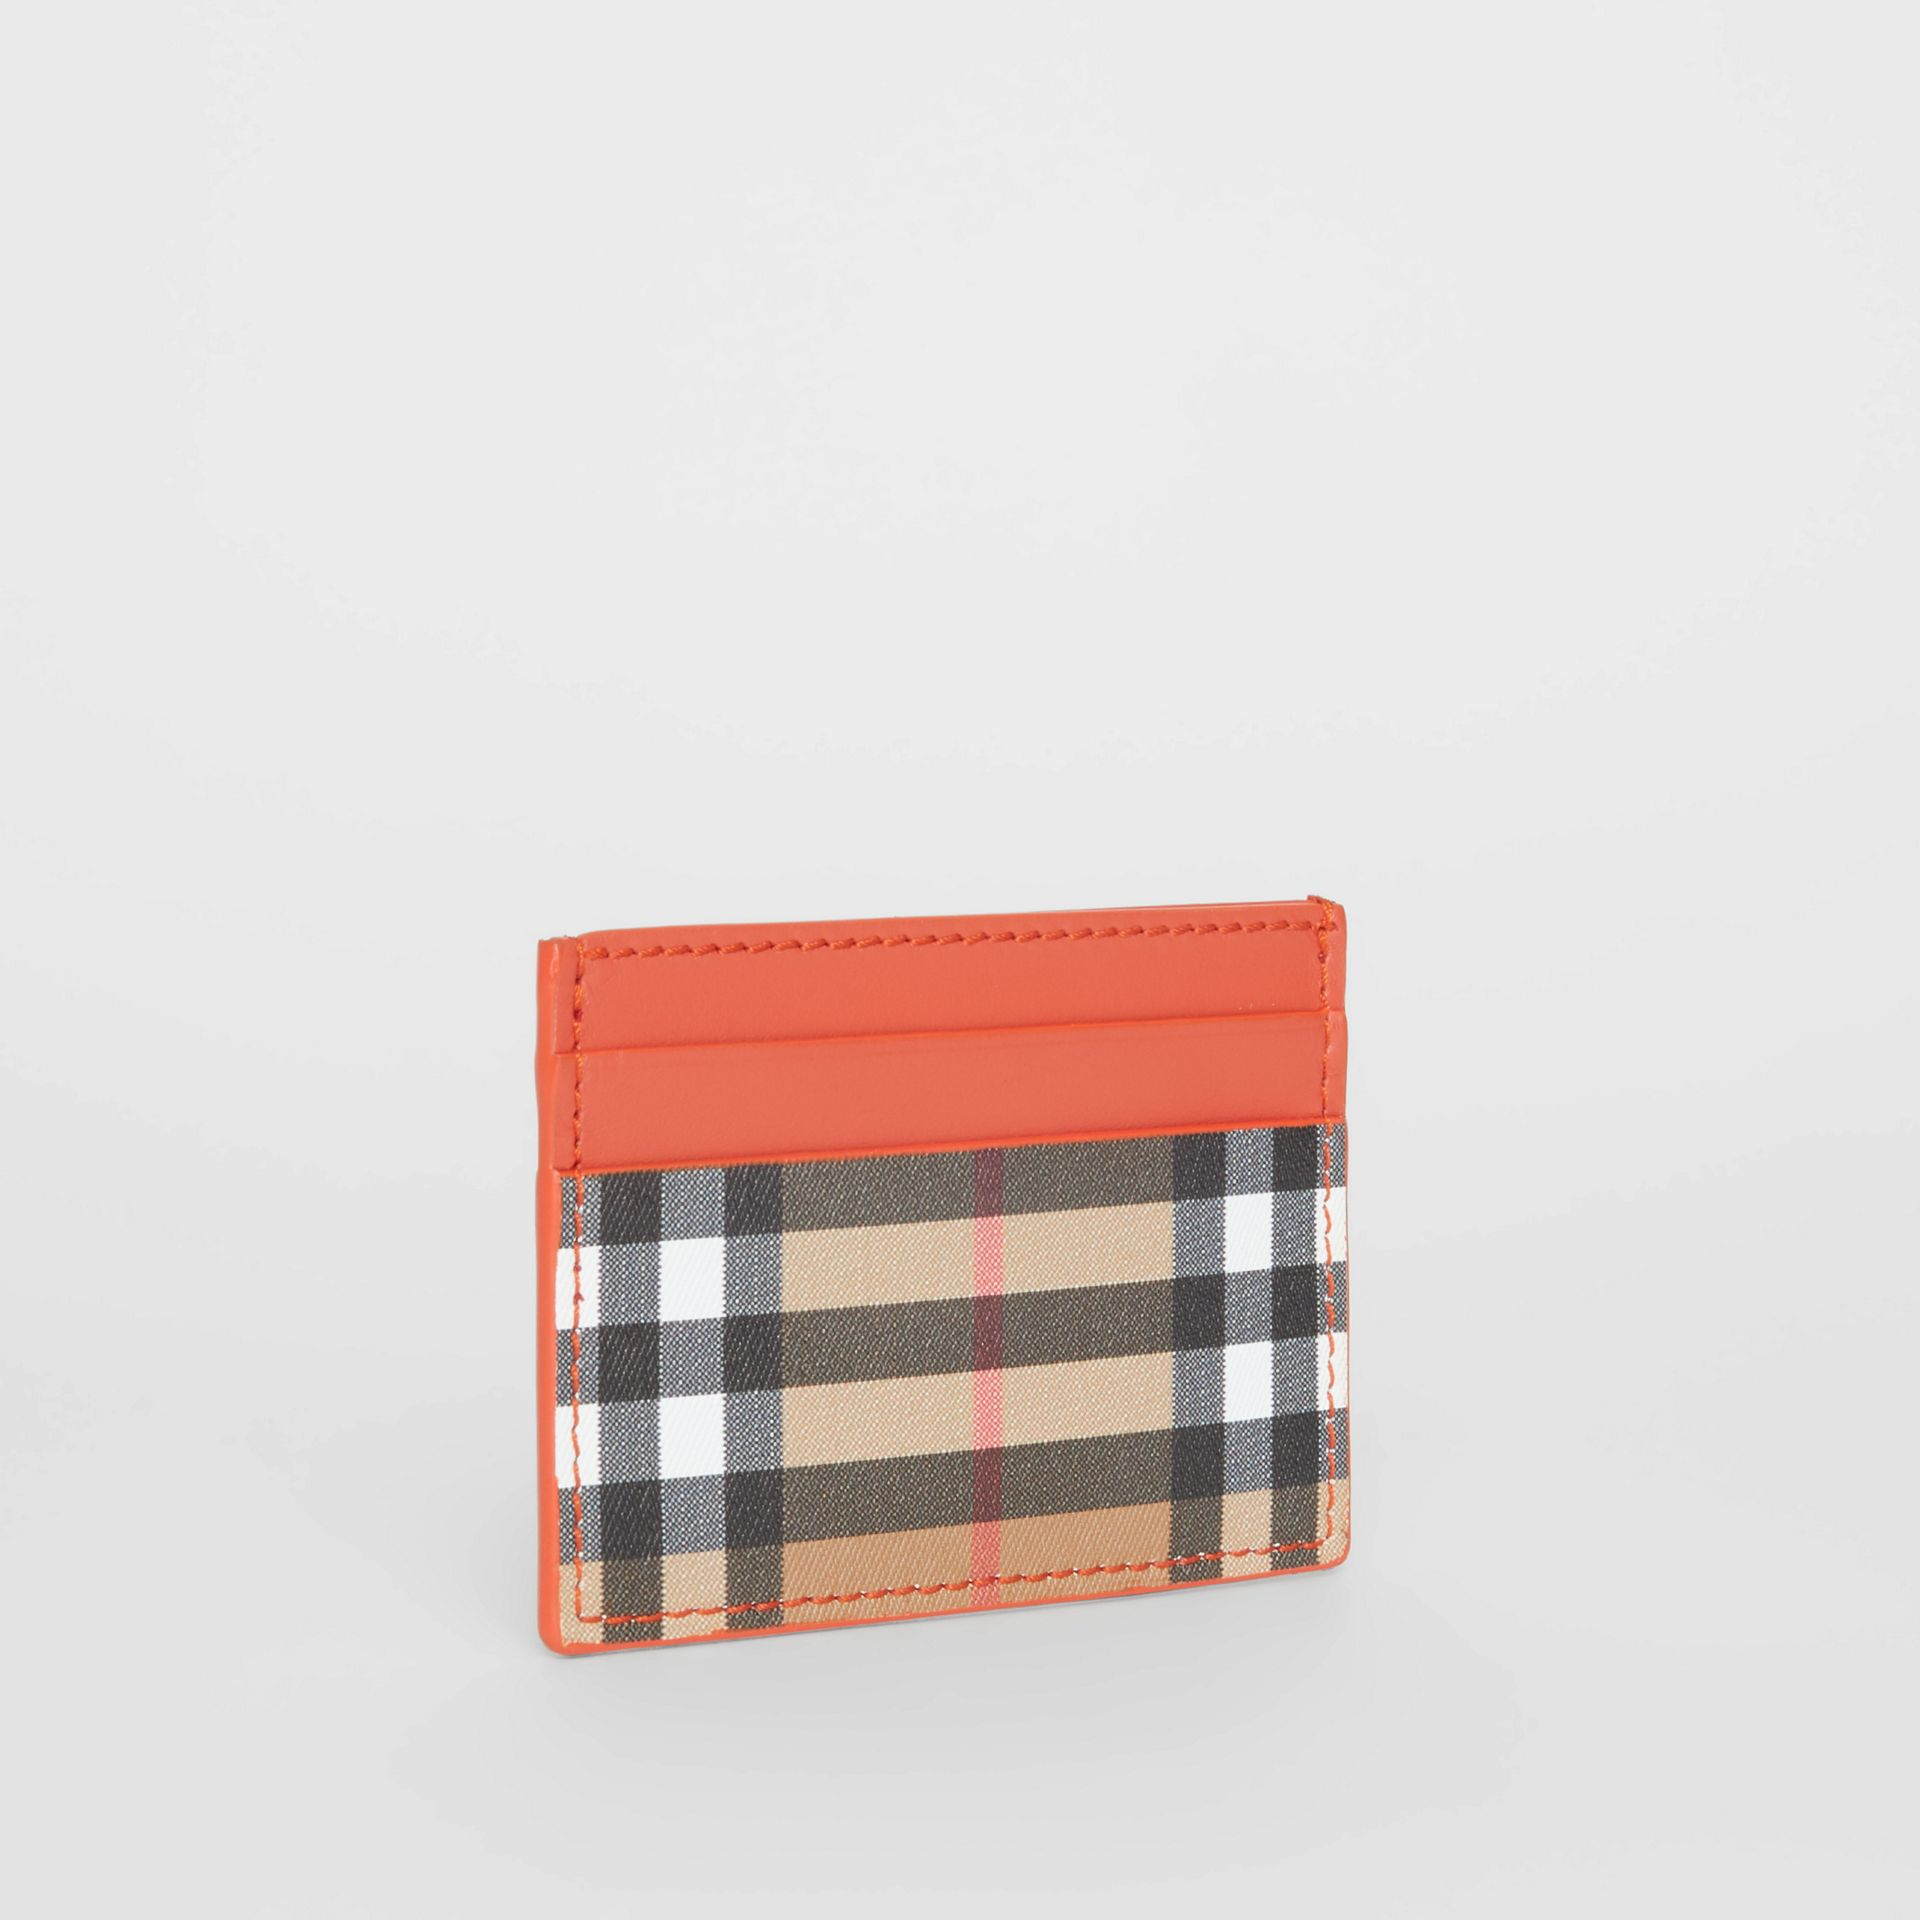 Vintage Check and Leather Card Case in Clementine - Women | Burberry Canada - gallery image 3